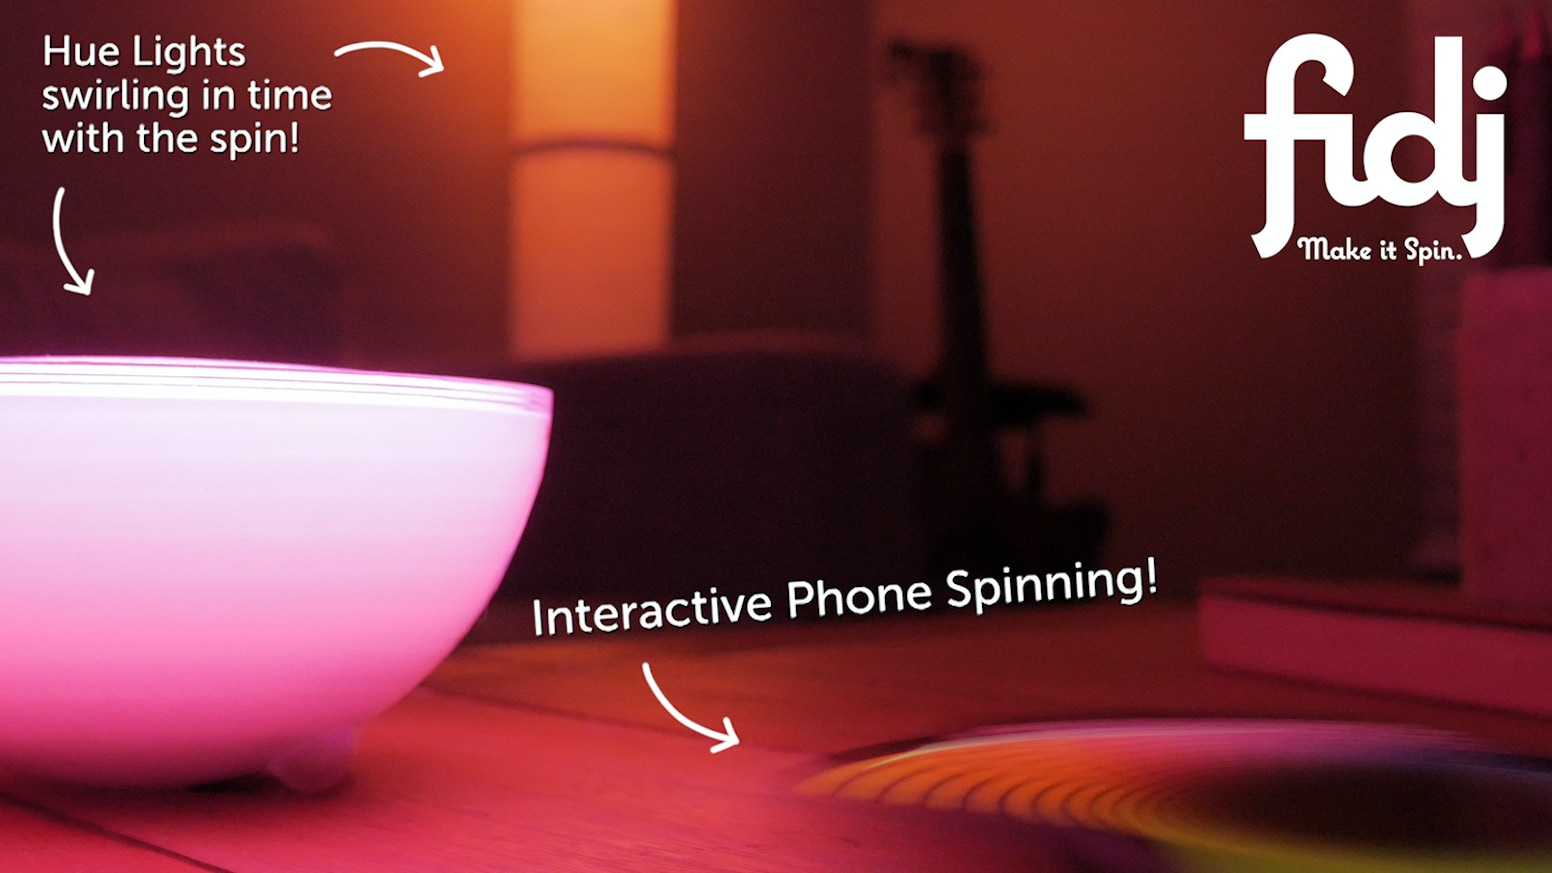 Make it Spin! The Fidj is a restickable gadget turning your phone into an app-enabled spinning machine. It even syncs to smart devices!